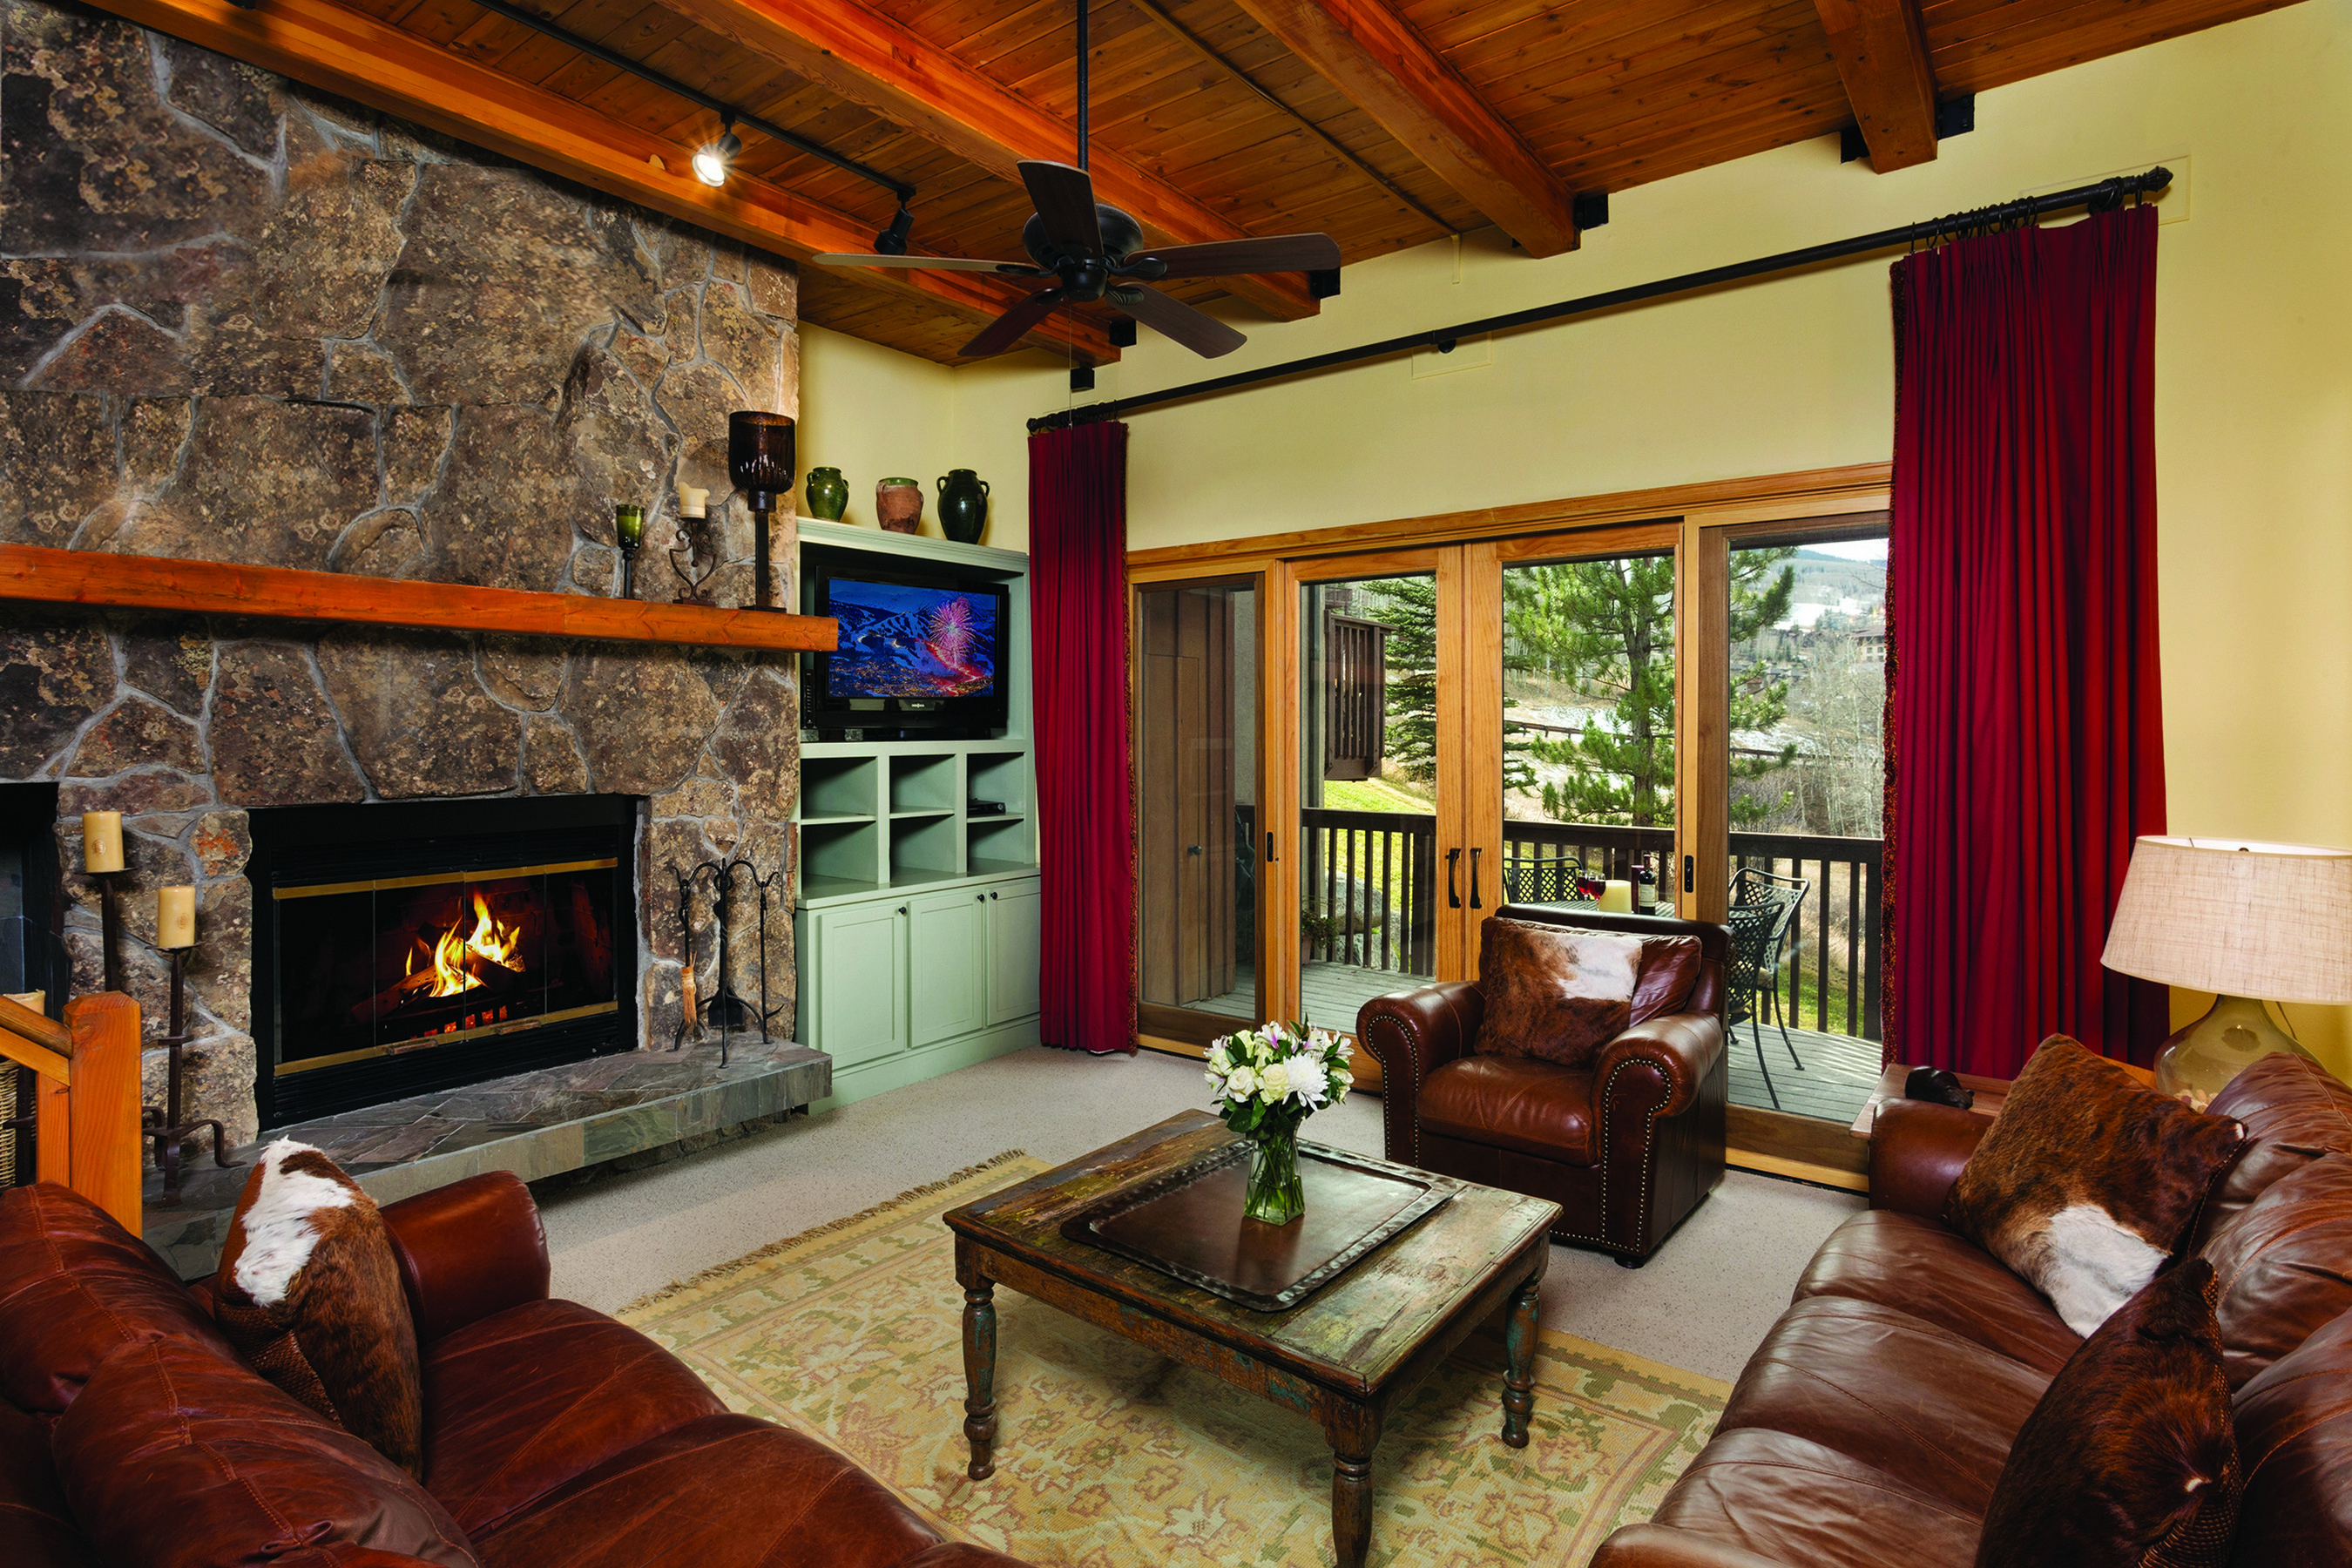 229 Faraway Road, 21 Snowmass Village Photo 1